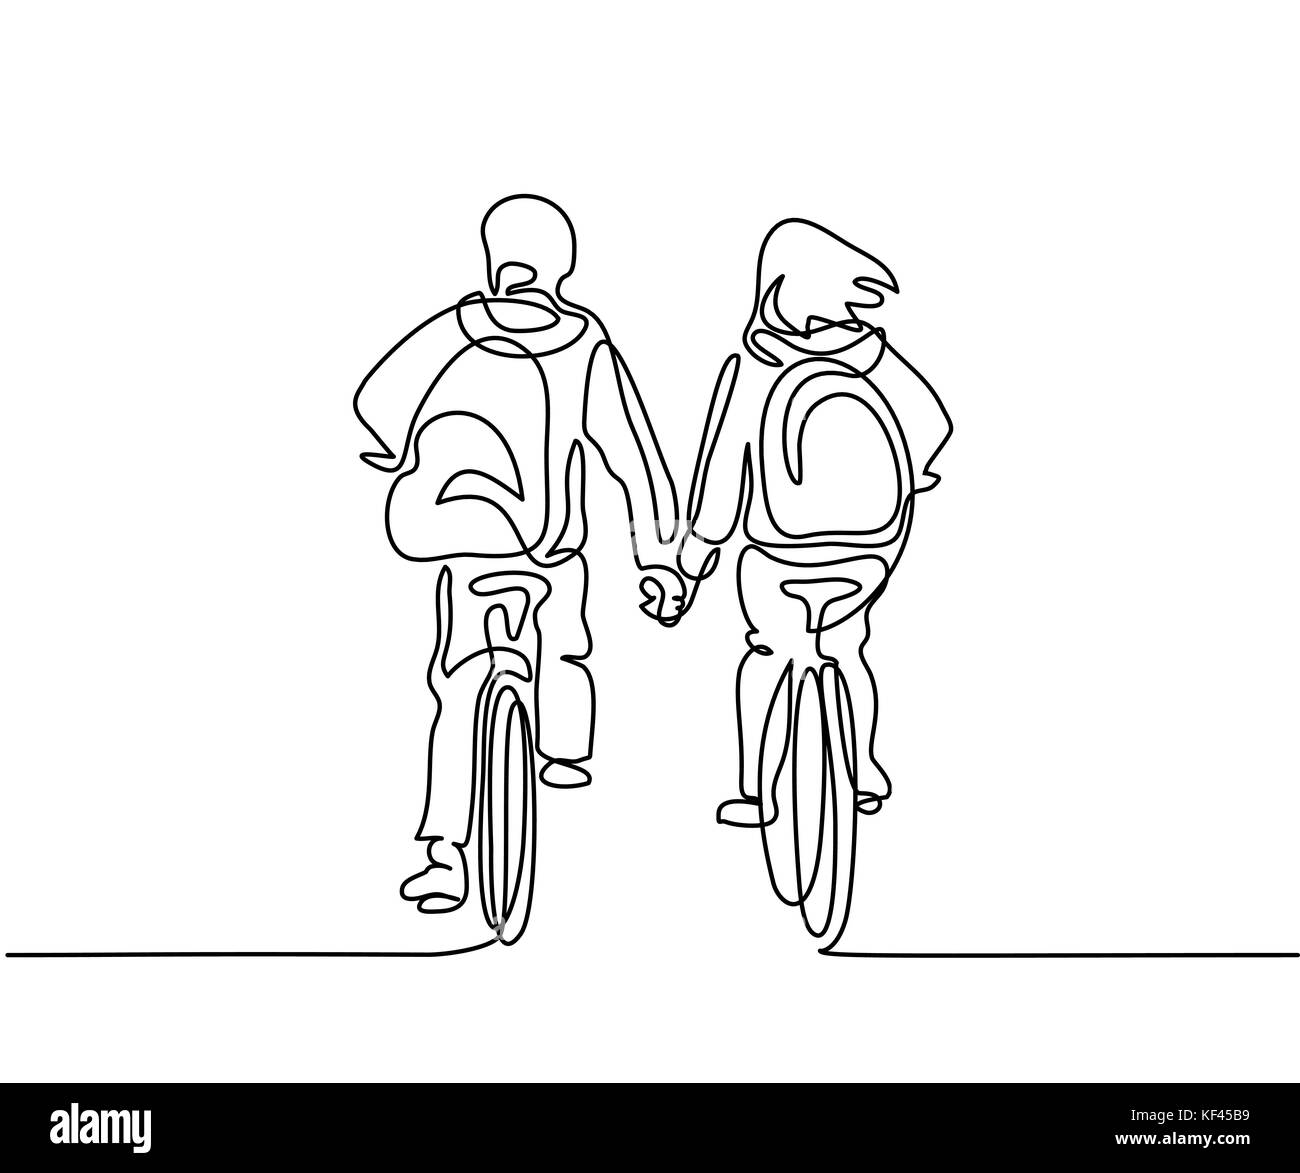 Continuous line drawing boy and girl bicycling to school holding hands vector illustration